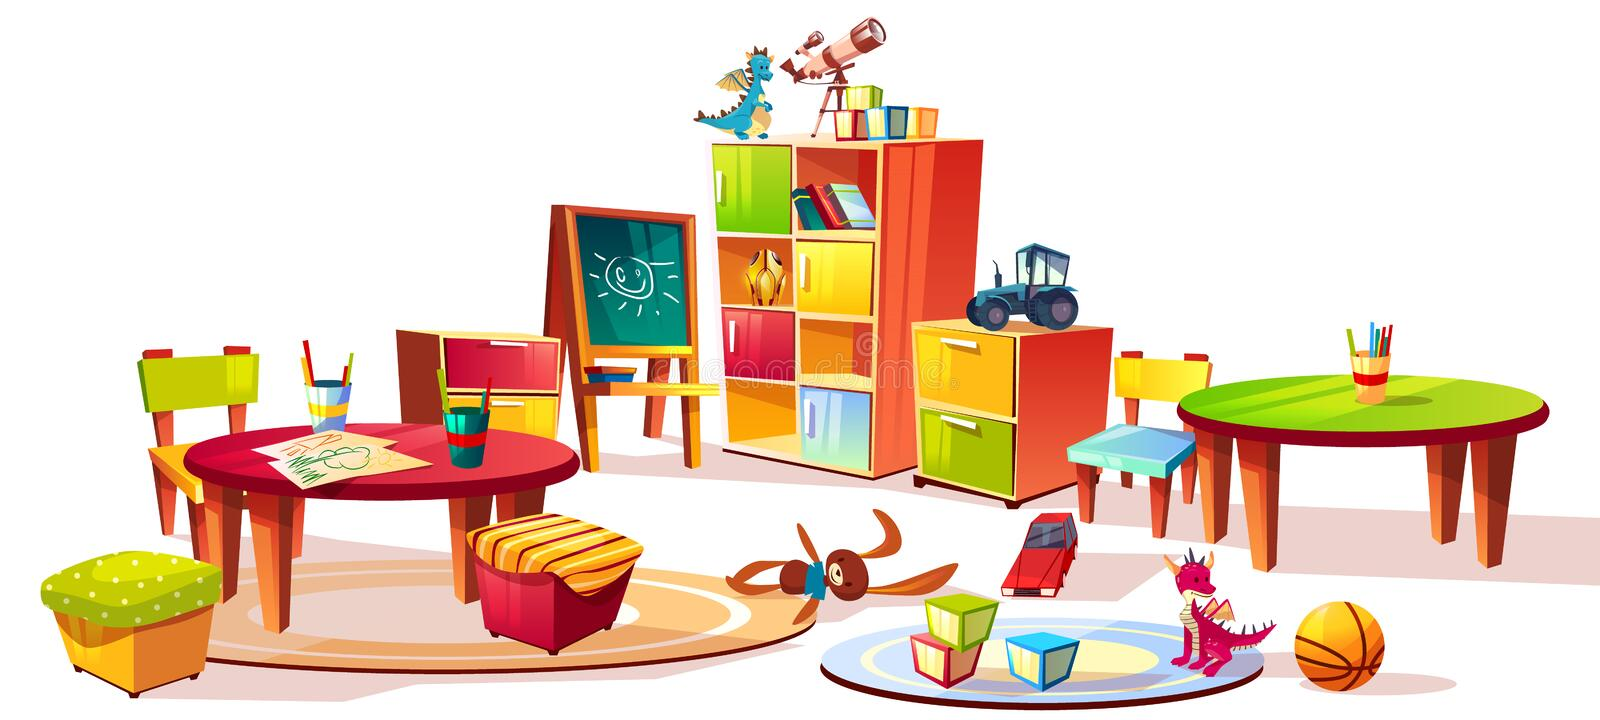 Kindergarten interior furniture vector illustration. Of preschool kid room drawers for toys, table with pencils for drawing and soft chairs for children game stock illustration